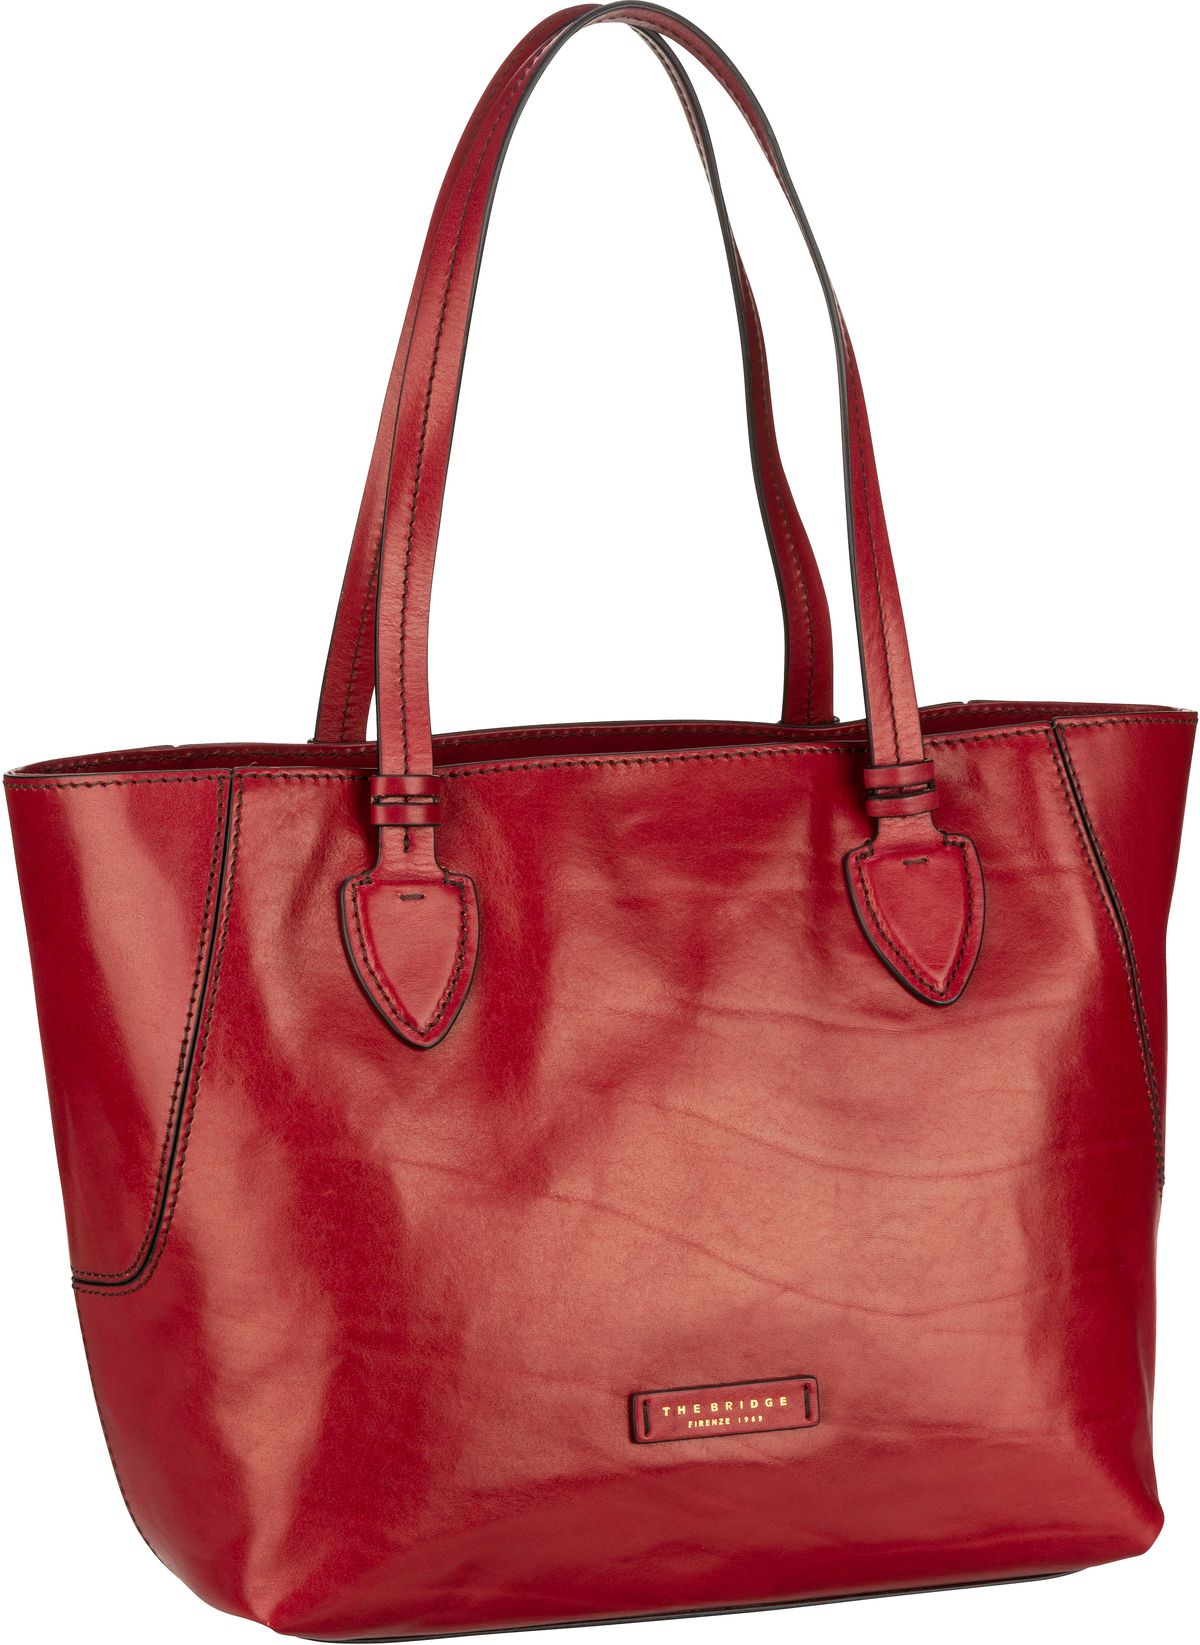 Handtasche Caterina 4730 Ribes Rosso/Oro